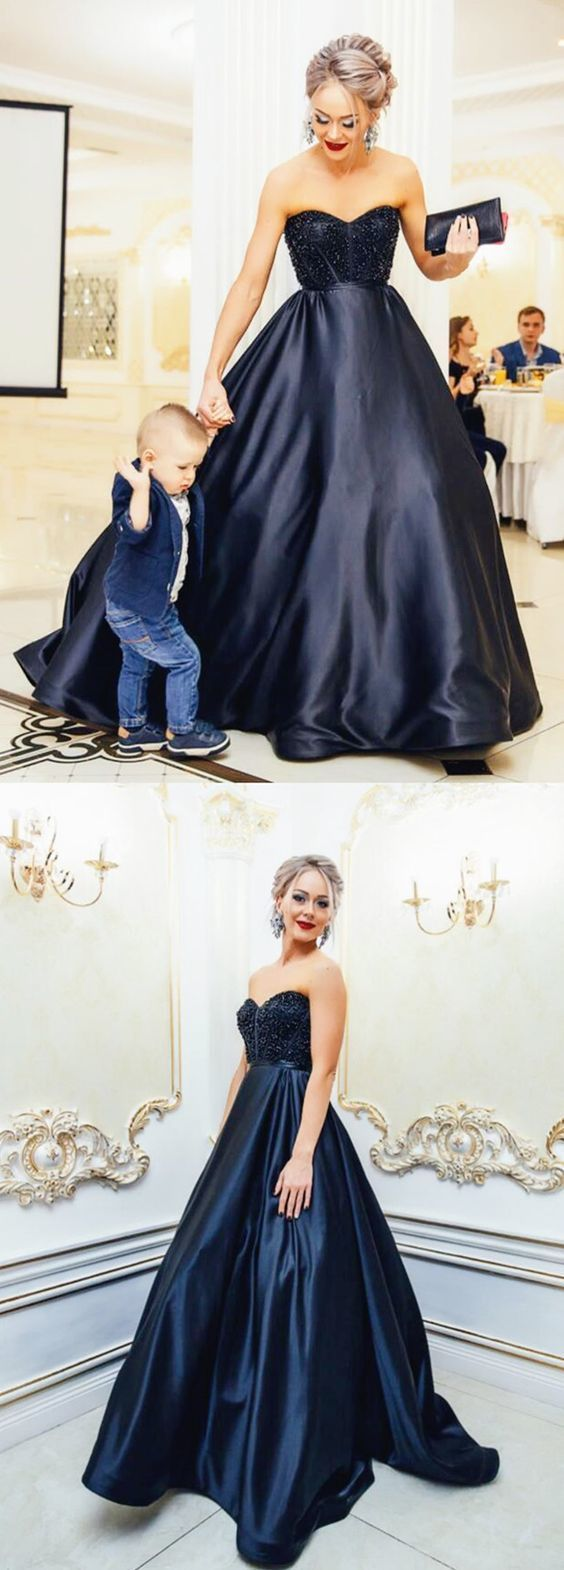 elegant long prom dress,formal evening dress, black prom dress